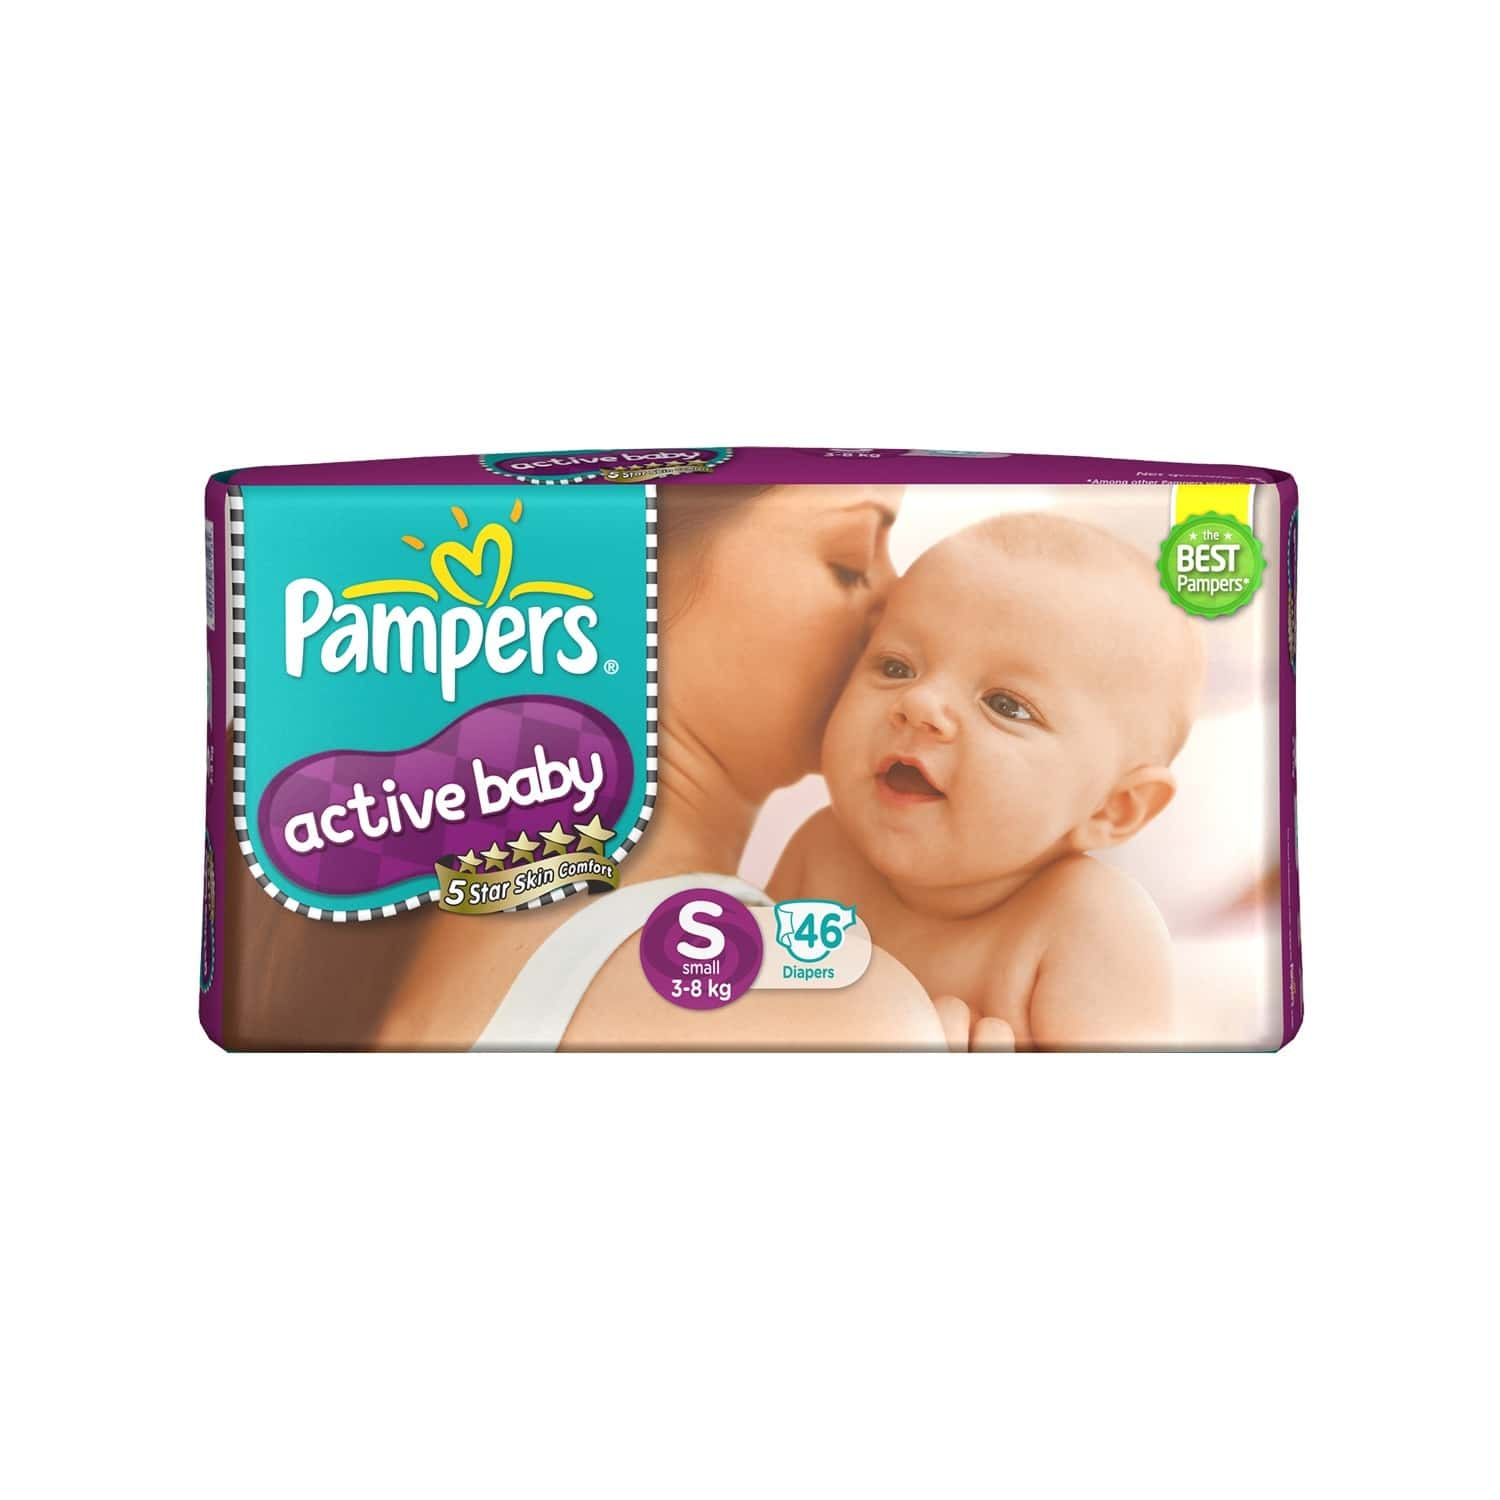 Pampers Active Baby Diapers Small Size 46 Pieces Pack